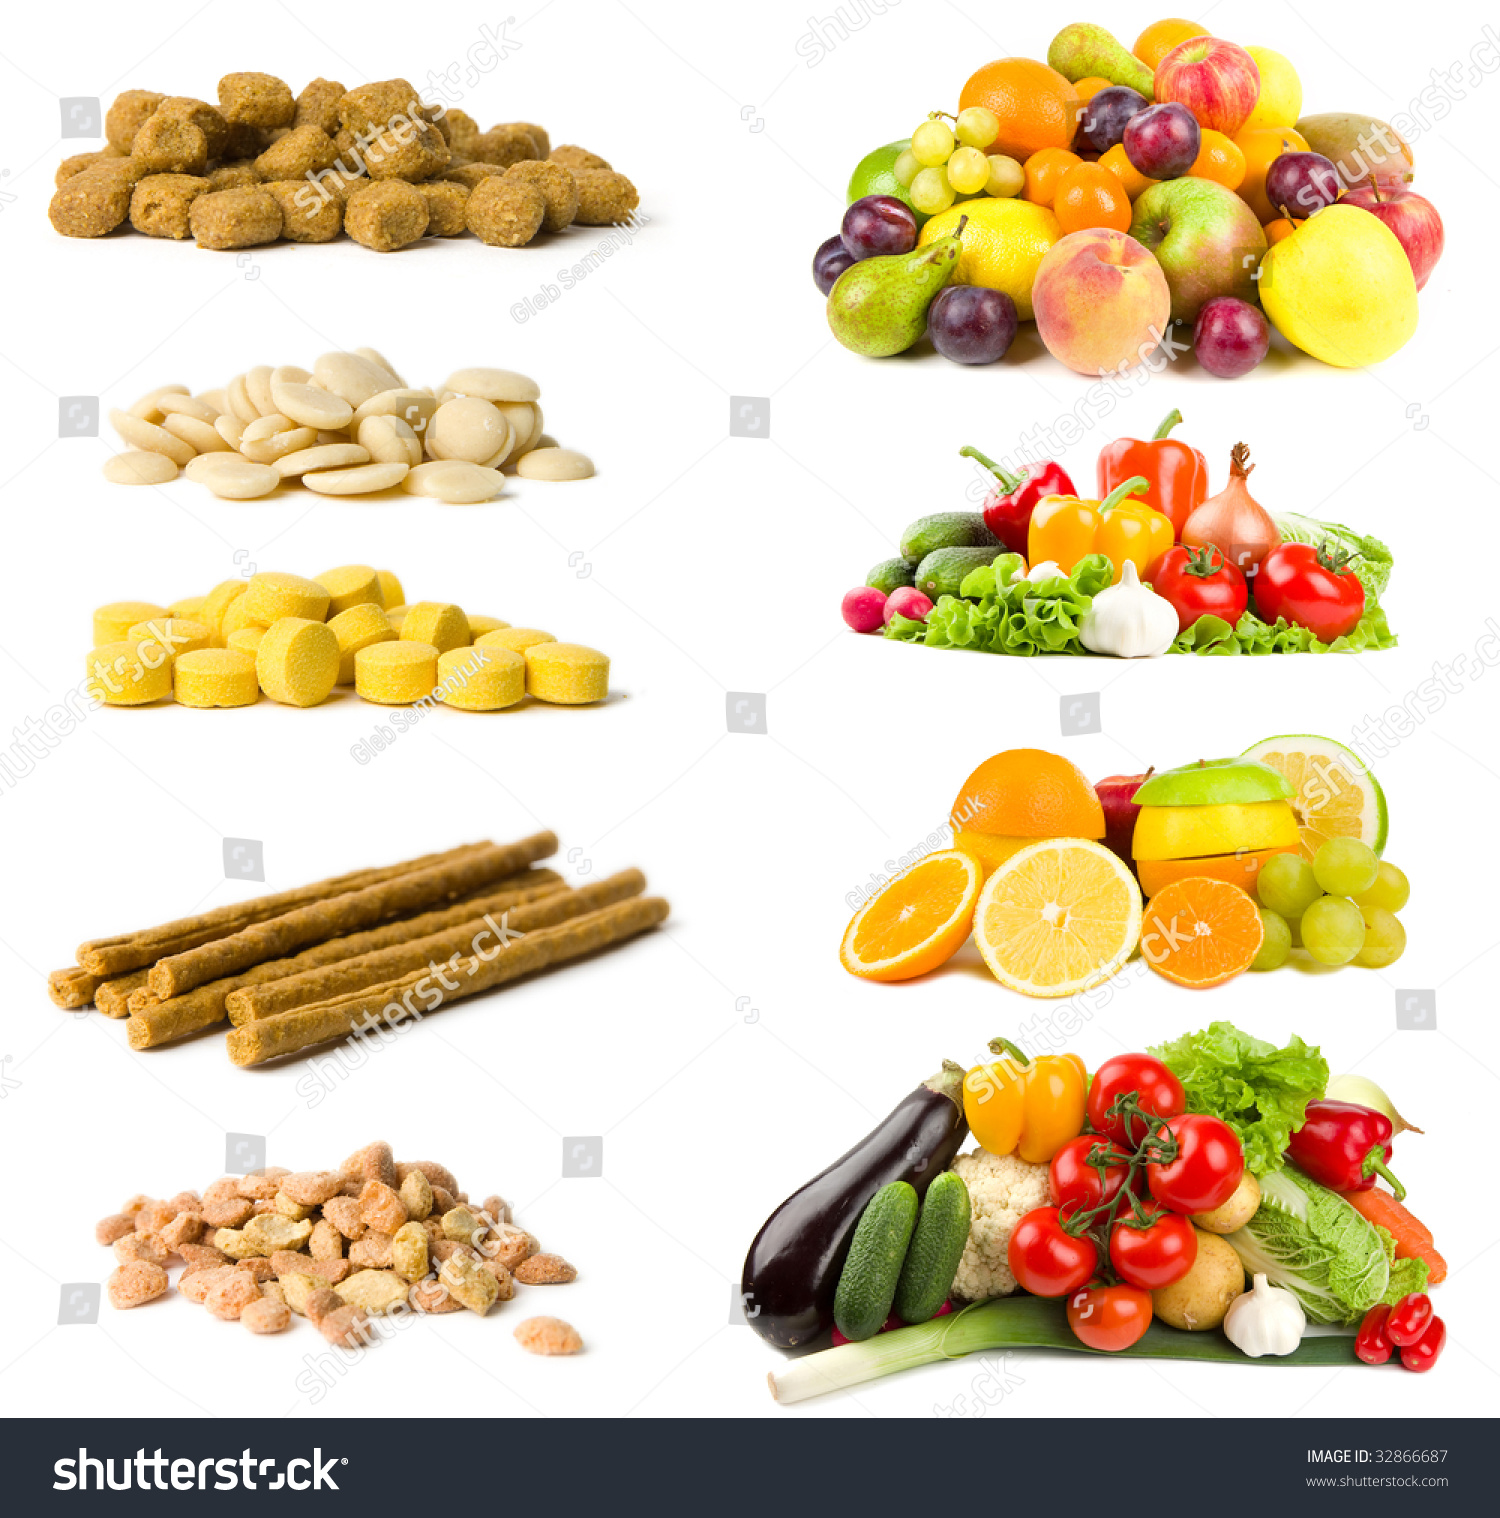 an analysis of the rules of good nutrition by eating healthy foods For good health, the type of fat people eat is far more read more on the nutrition source about changes that make healthy foods more accessible and.